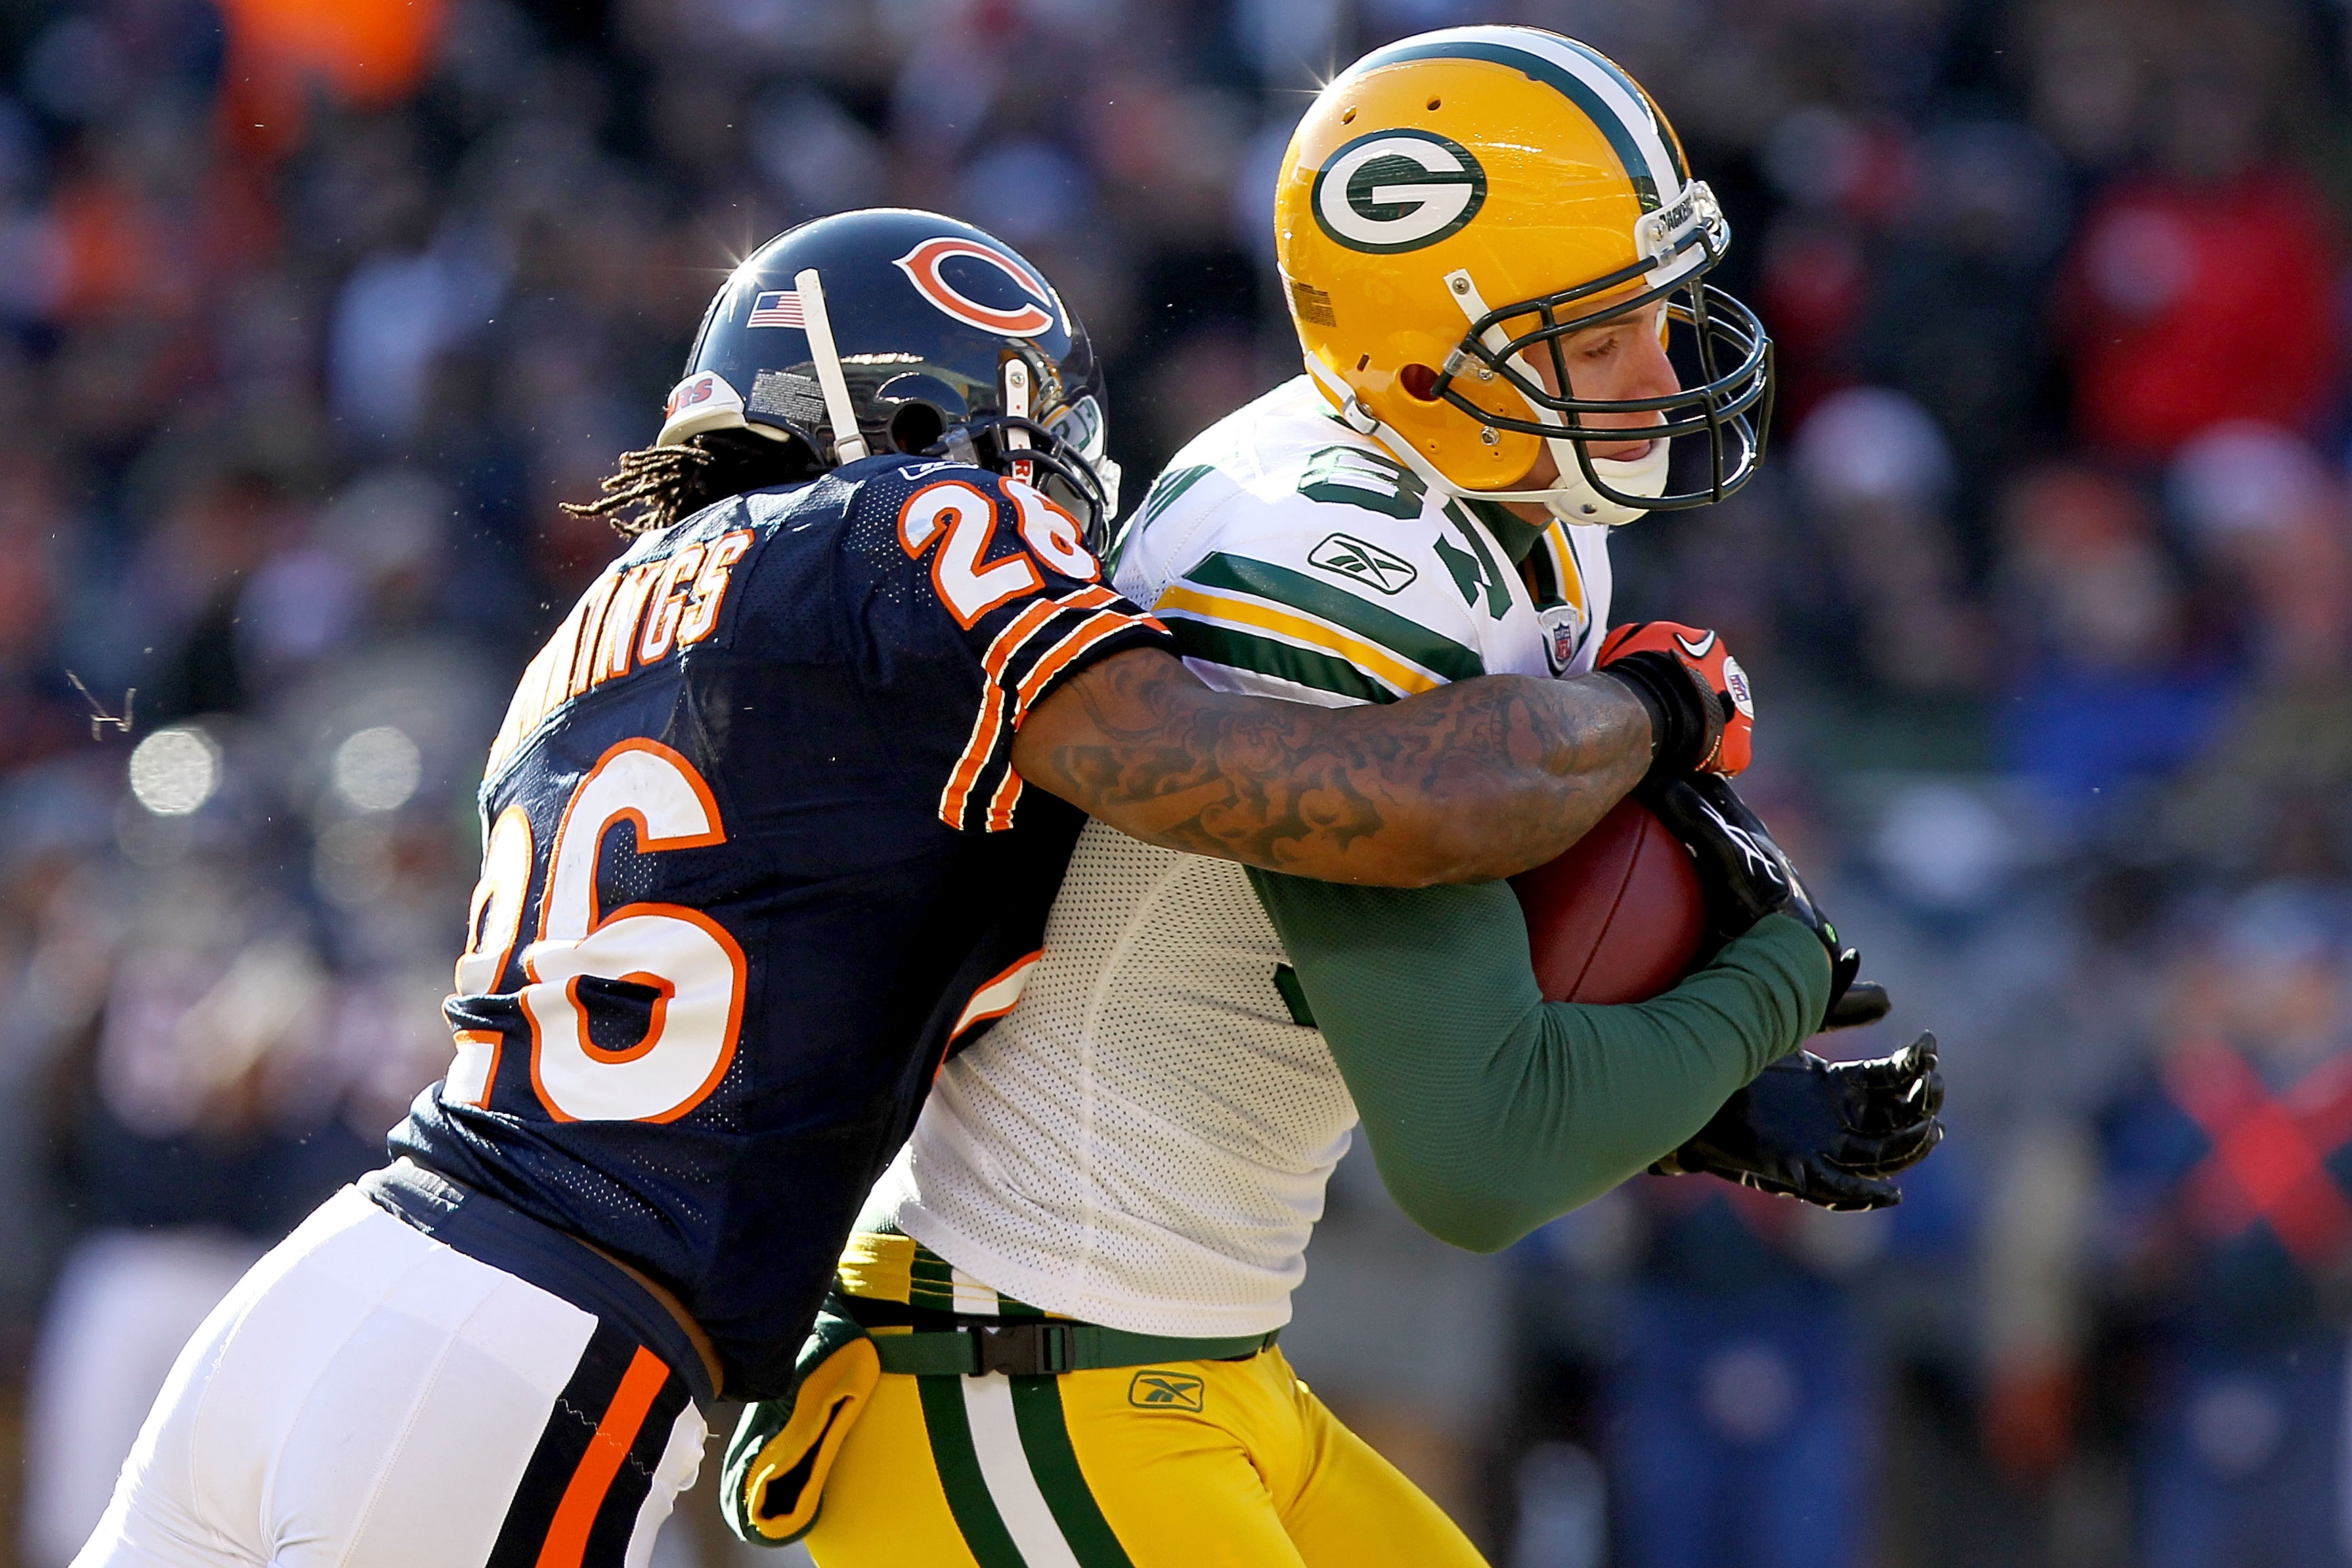 CHICAGO, IL - JANUARY 23:  Wide receiver Jordy Nelson #87 of the Green Bay Packers catches a 22-yard pass as he is tackled by Tim Jennings #26 of the Chicago Bears in the first quarter of the NFC Championship Game at Soldier Field on January 23, 2011 in C